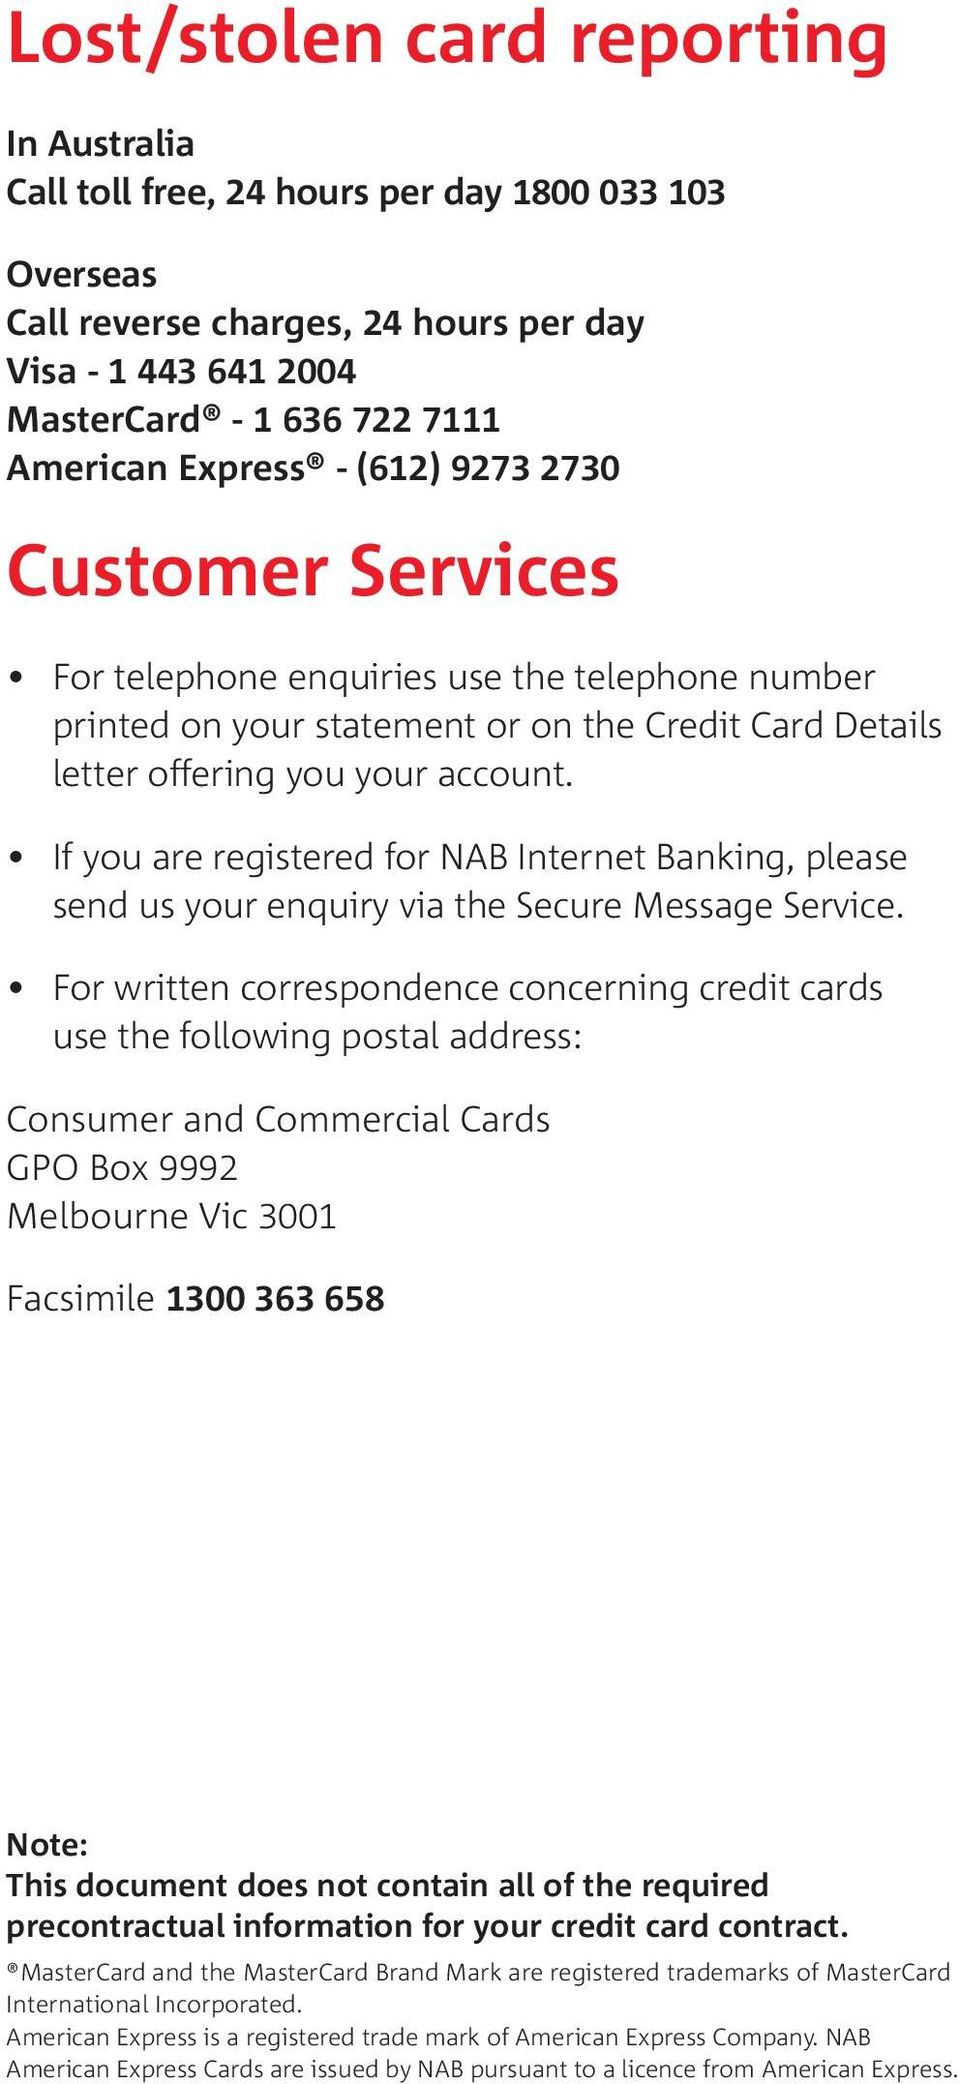 If you are registered for NAB Internet Banking, please send us your enquiry via the Secure Message Service.